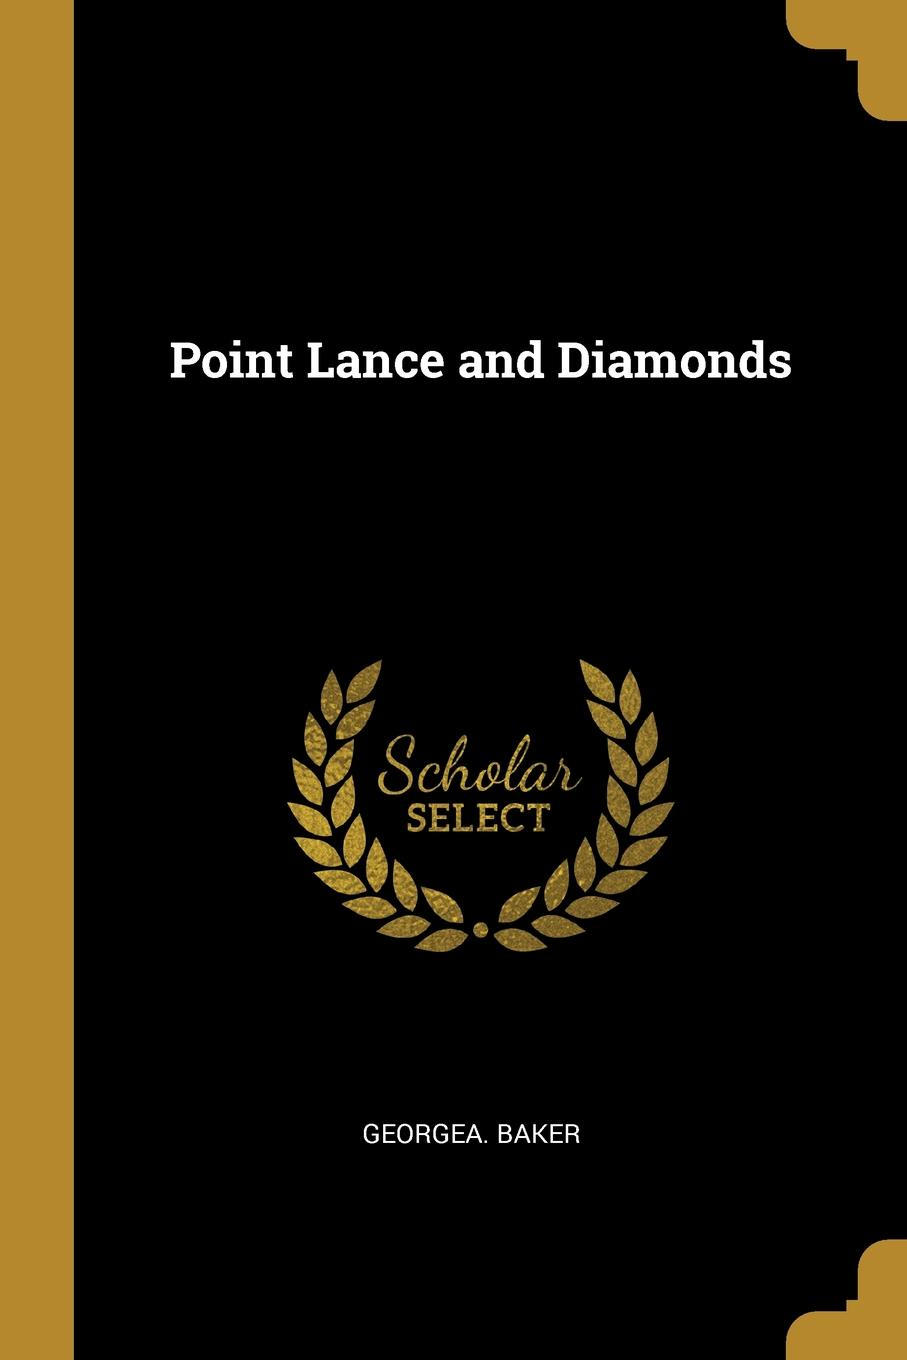 GeorgeA. Baker. Point Lance and Diamonds